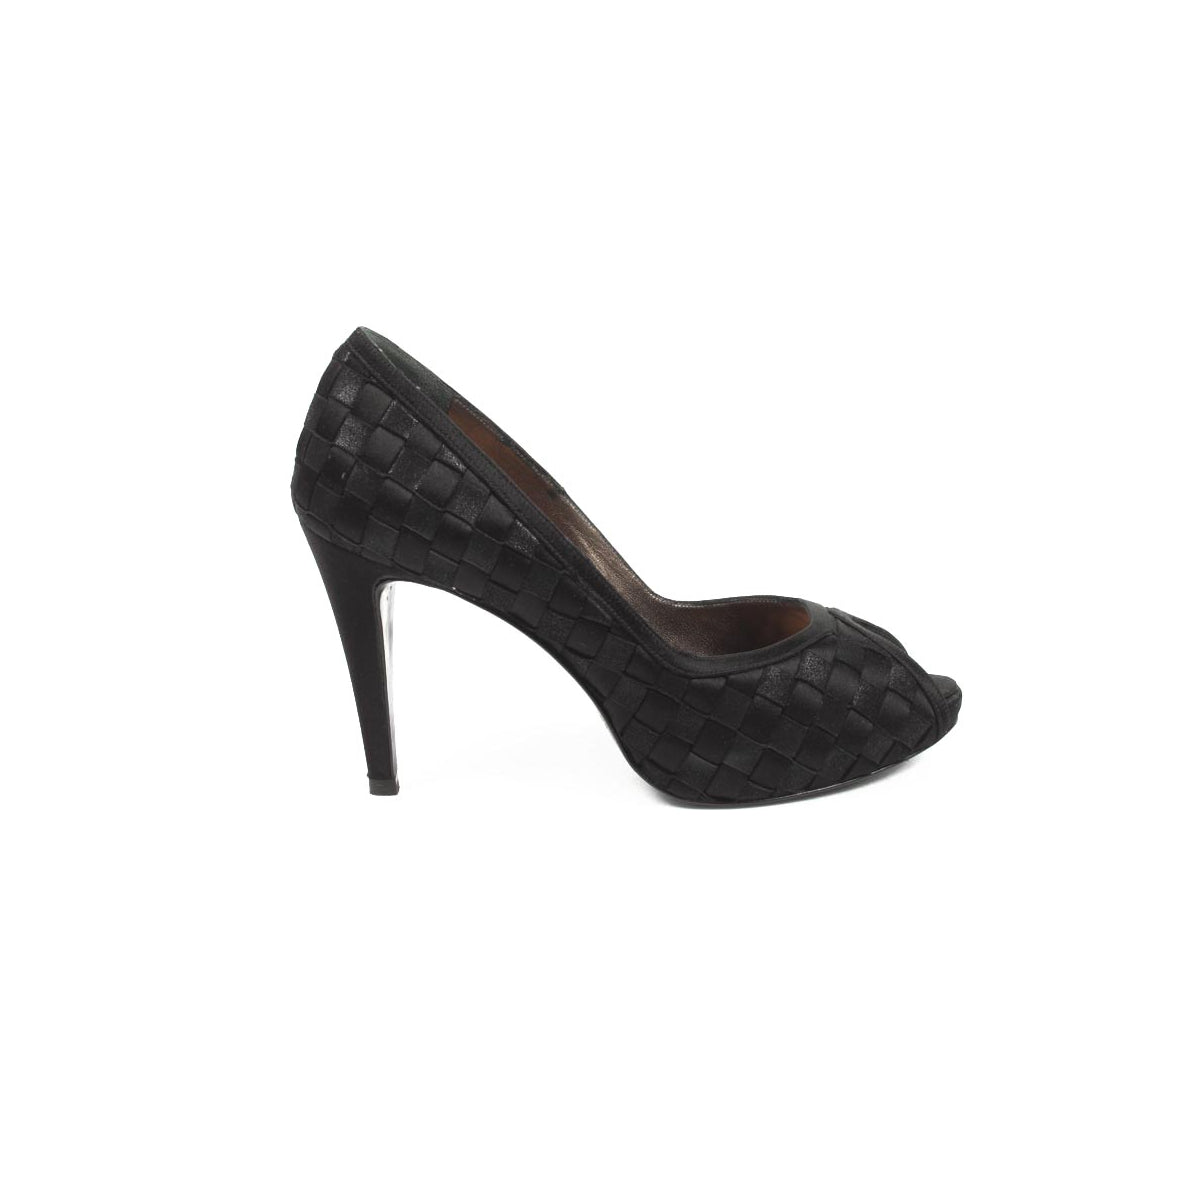 Rodo ladies pump open toe S7837 604 900